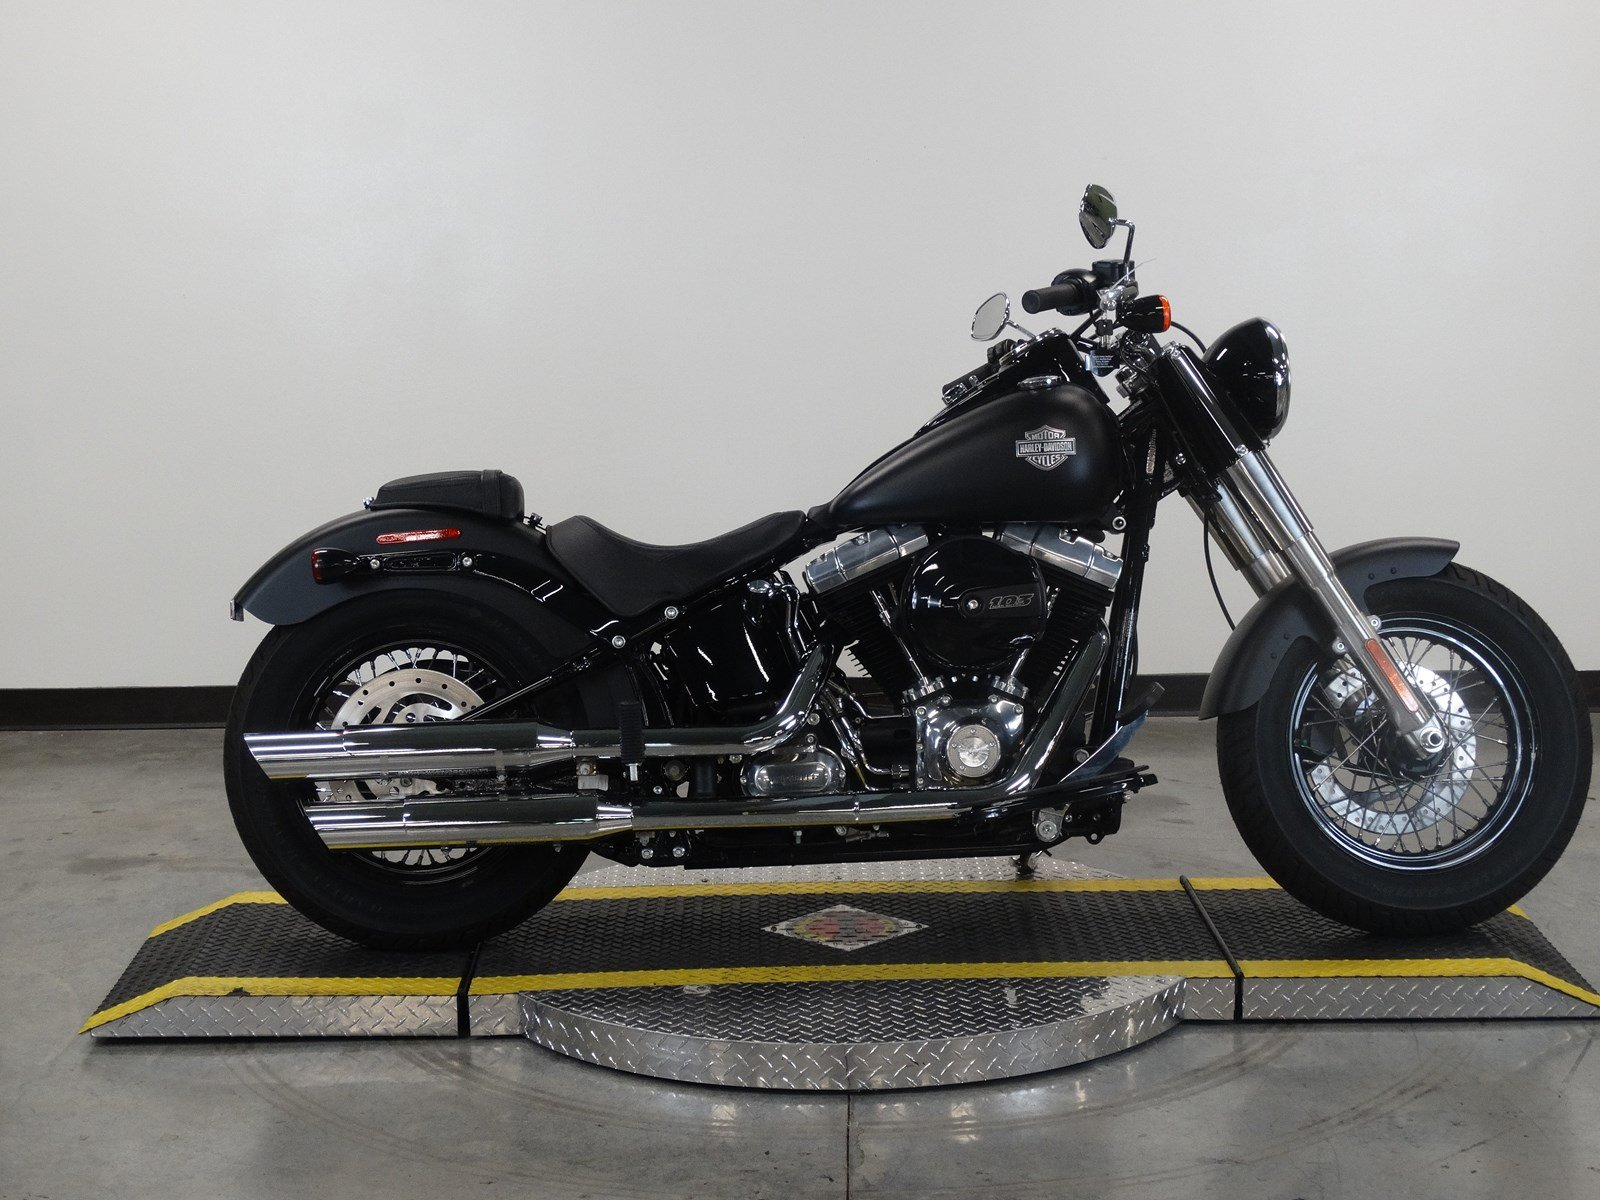 Pre-Owned 2017 Harley-Davidson Softail Slim FLS